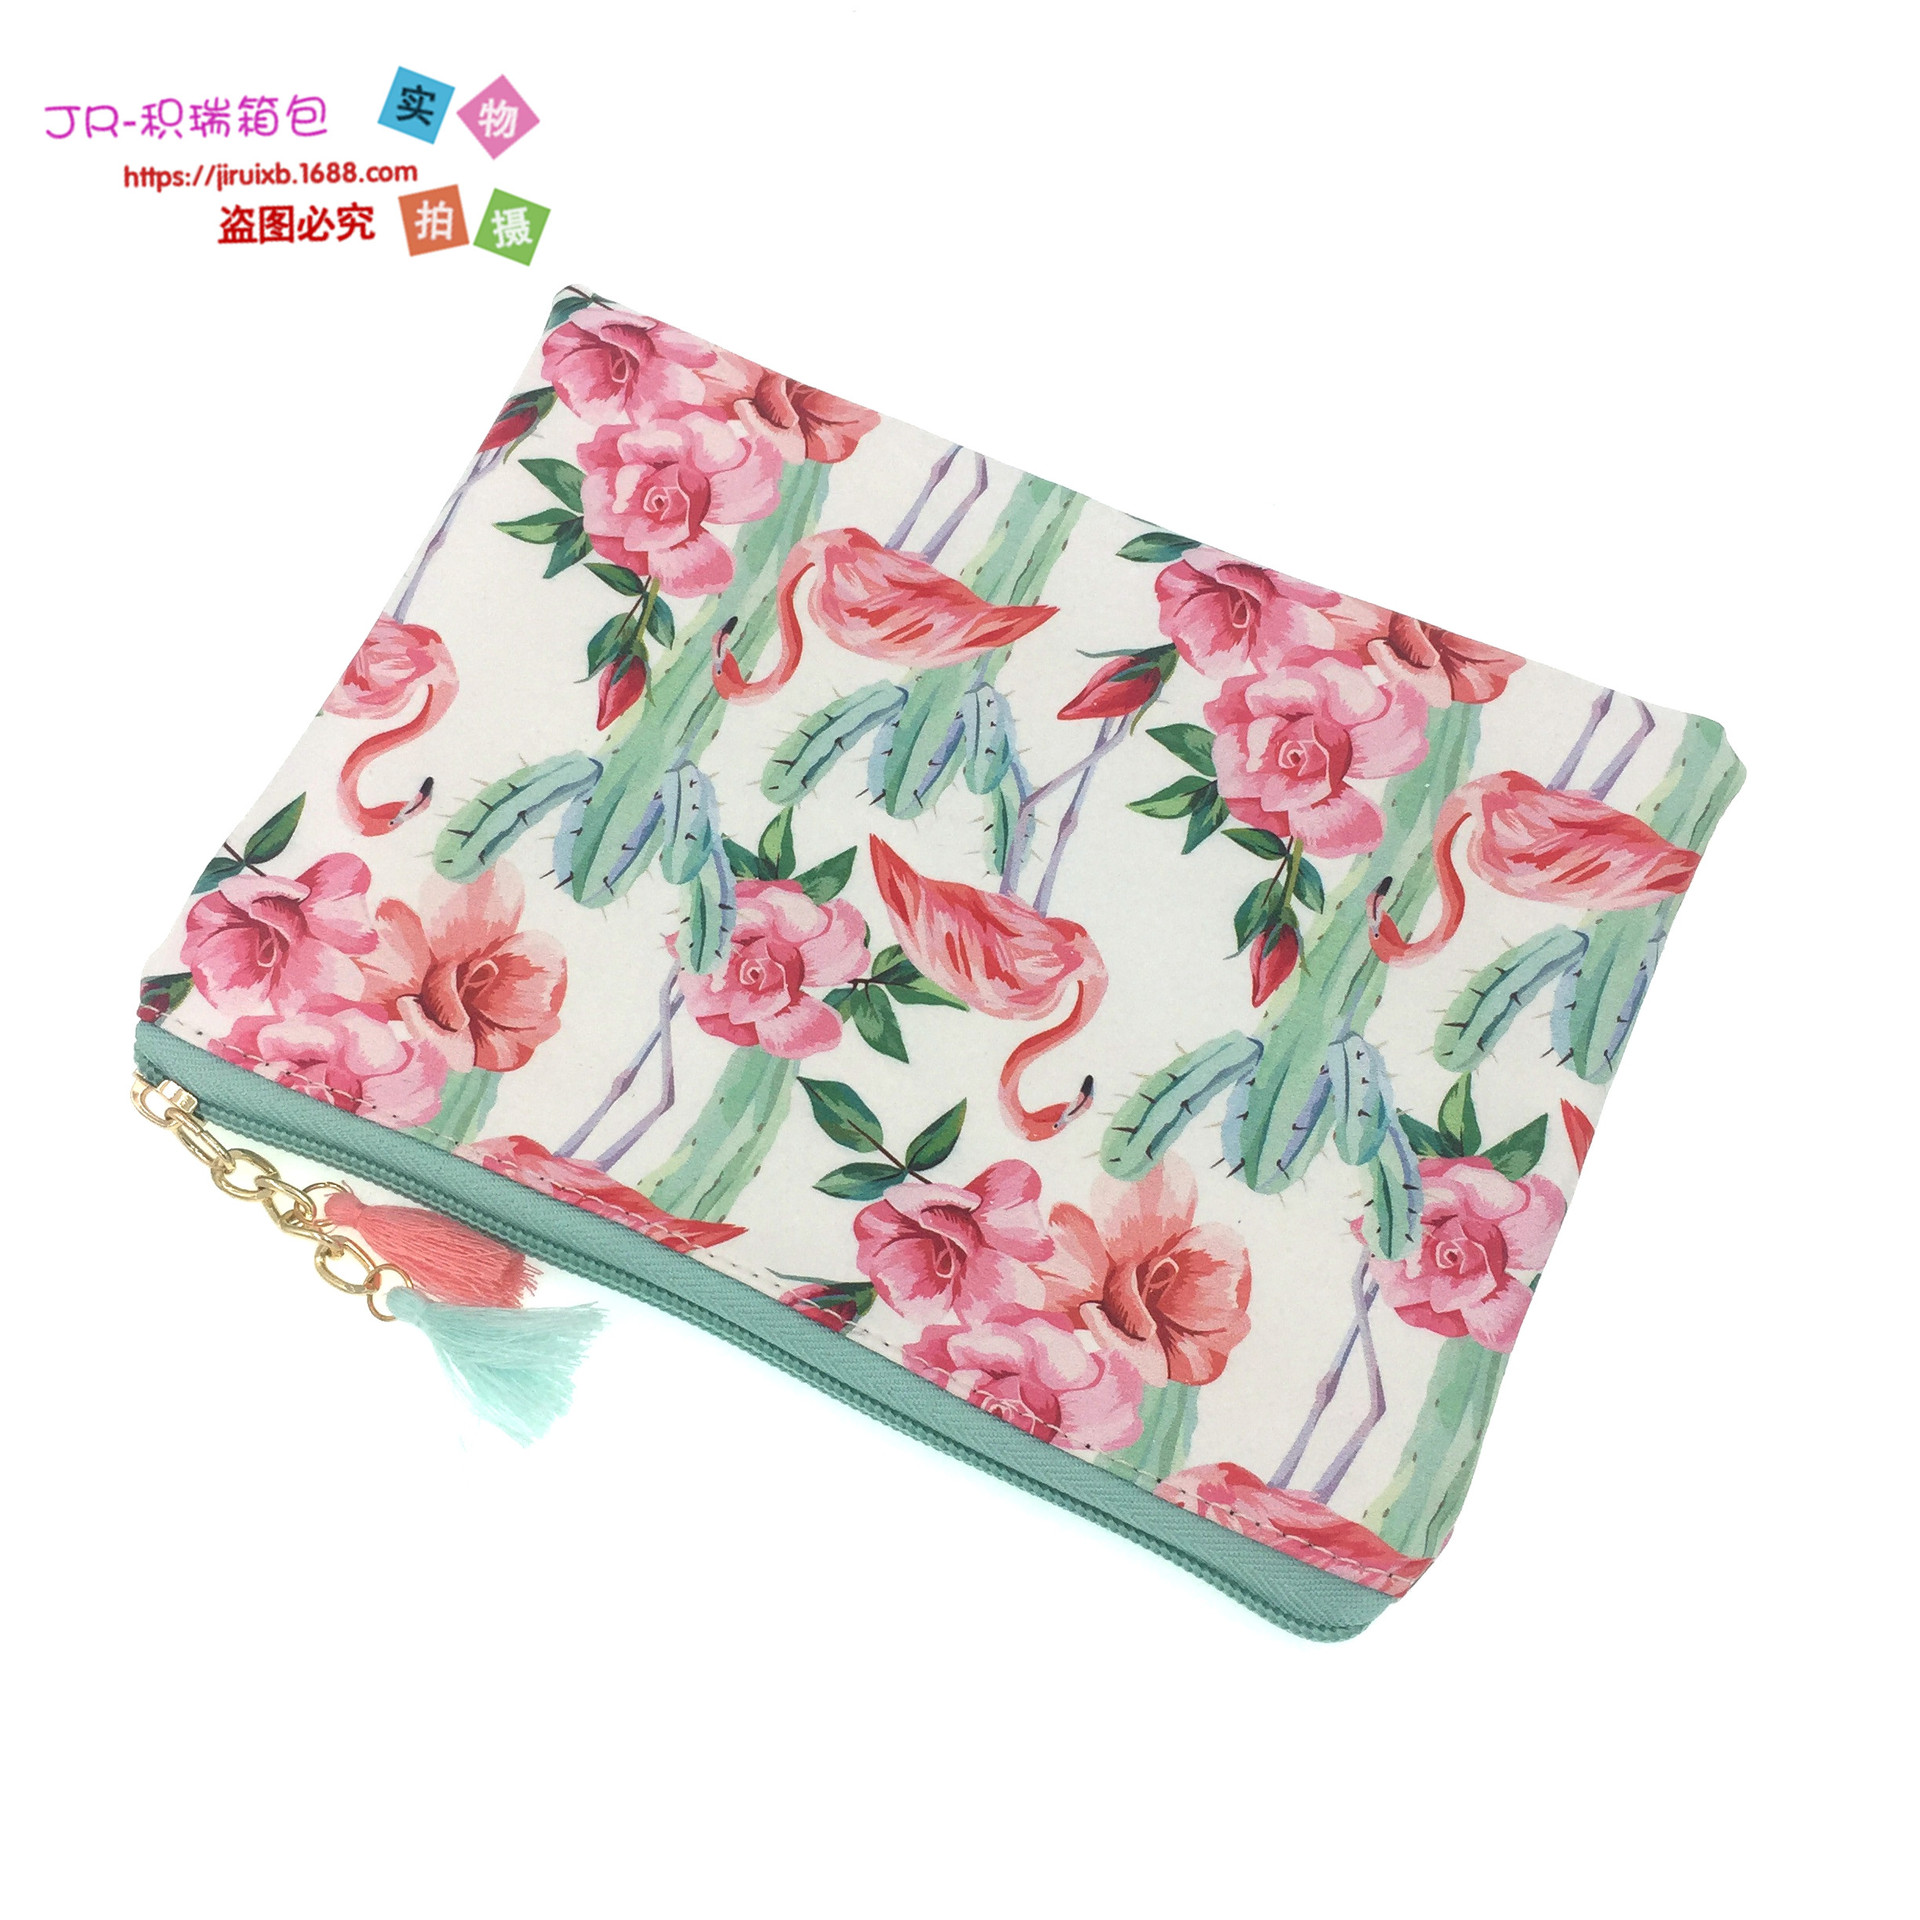 2018 New Style Hot Sales Europe And America Cactus PU Purse Document Package Tassels Cosmetic Bag Clutch Bag